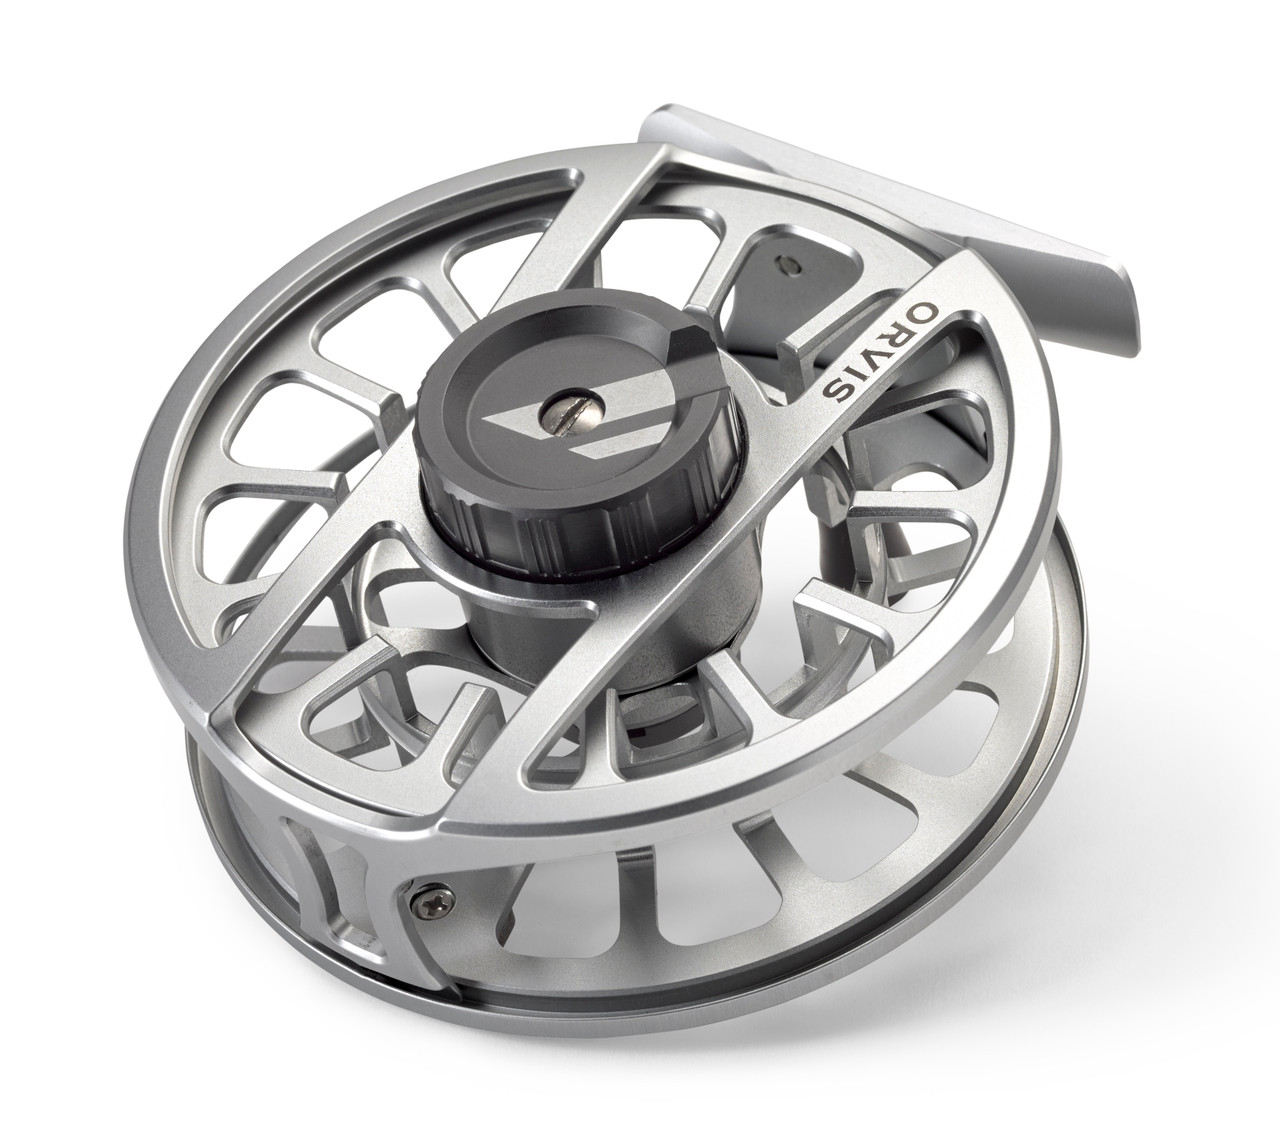 Orvis Hydros Super Large Arbor Fly Fishing Reel, Silver